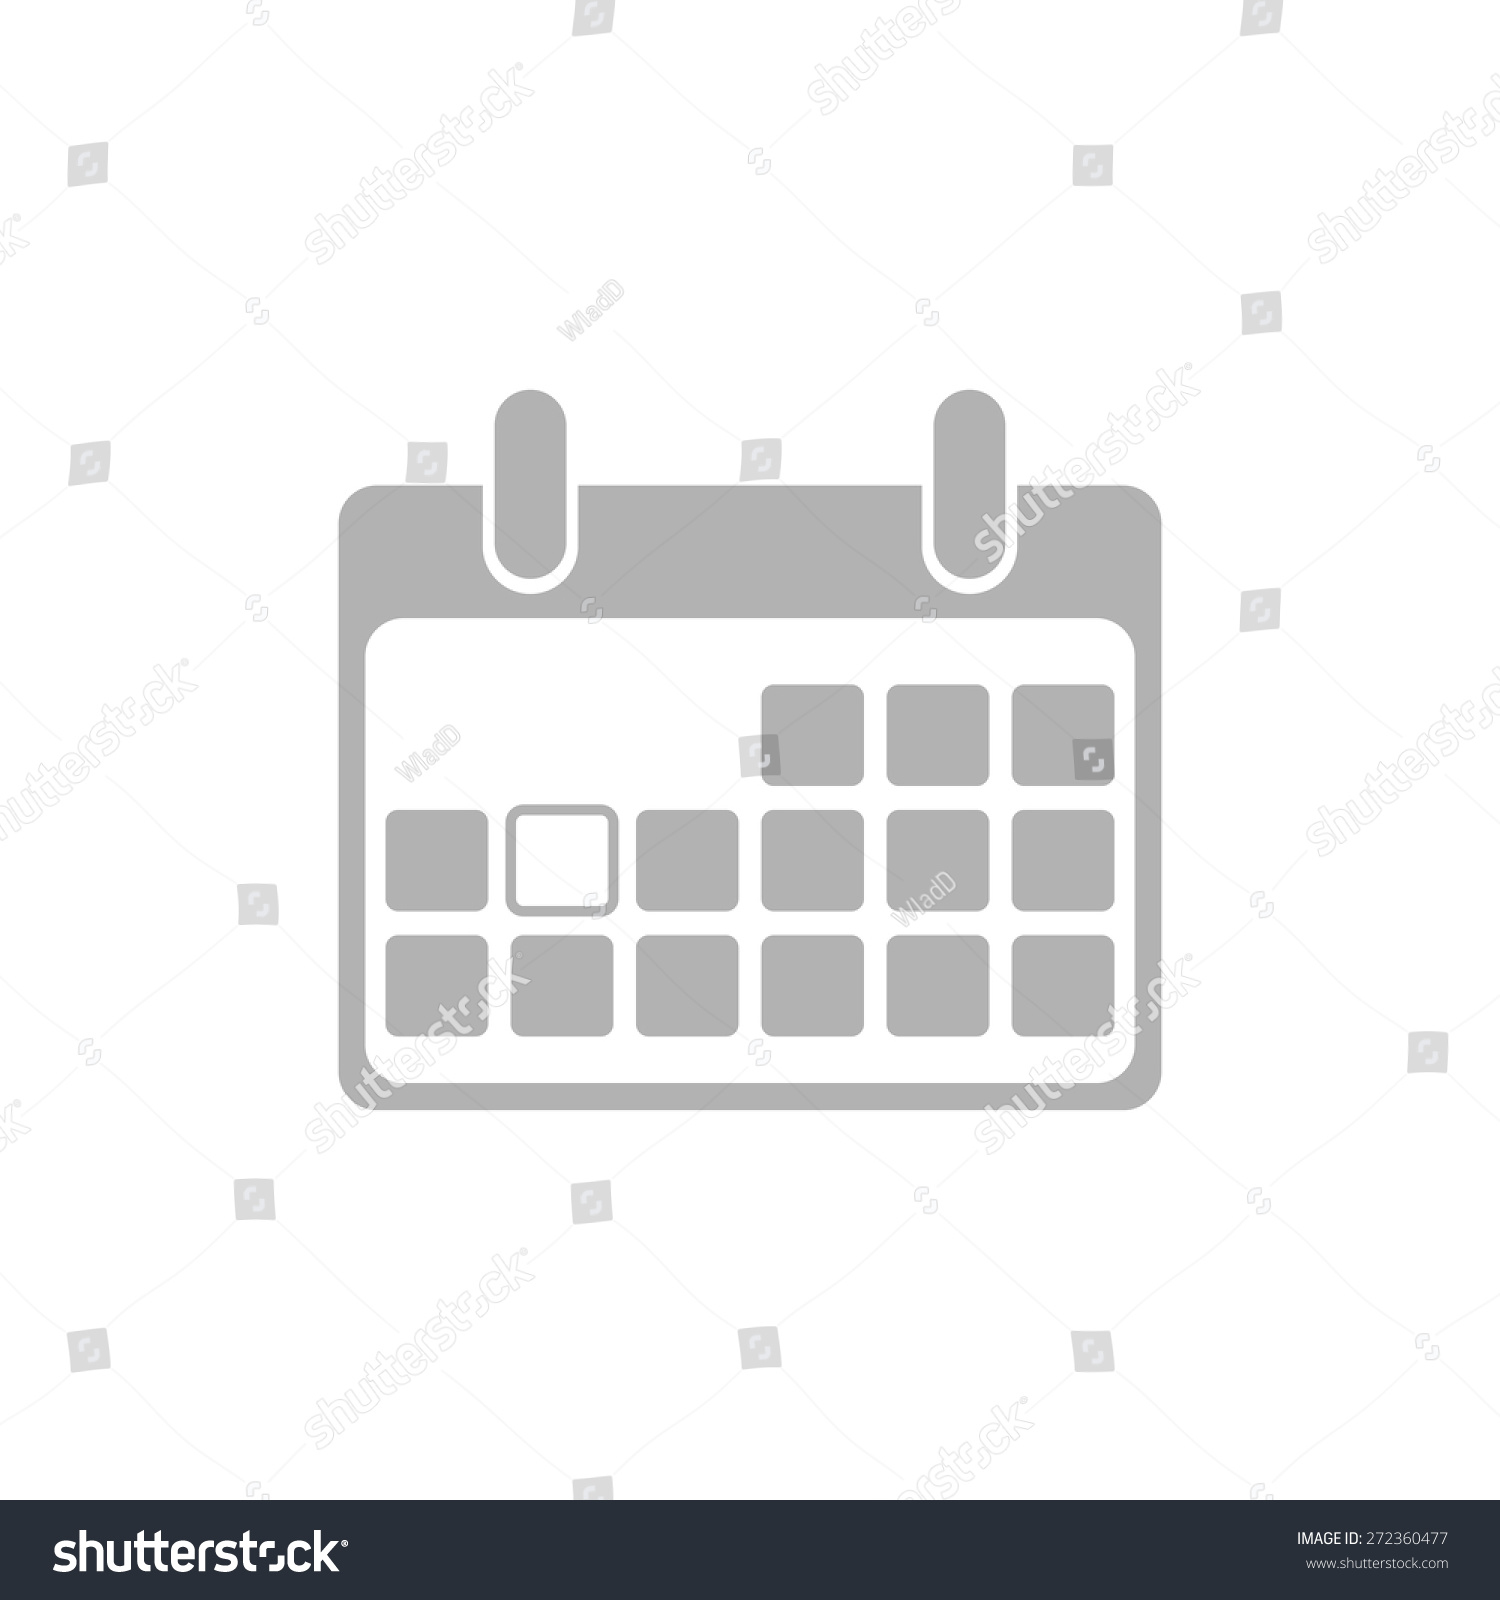 Blank Calendar Icon Vector : Blank calendar icon imgkid the image kid has it